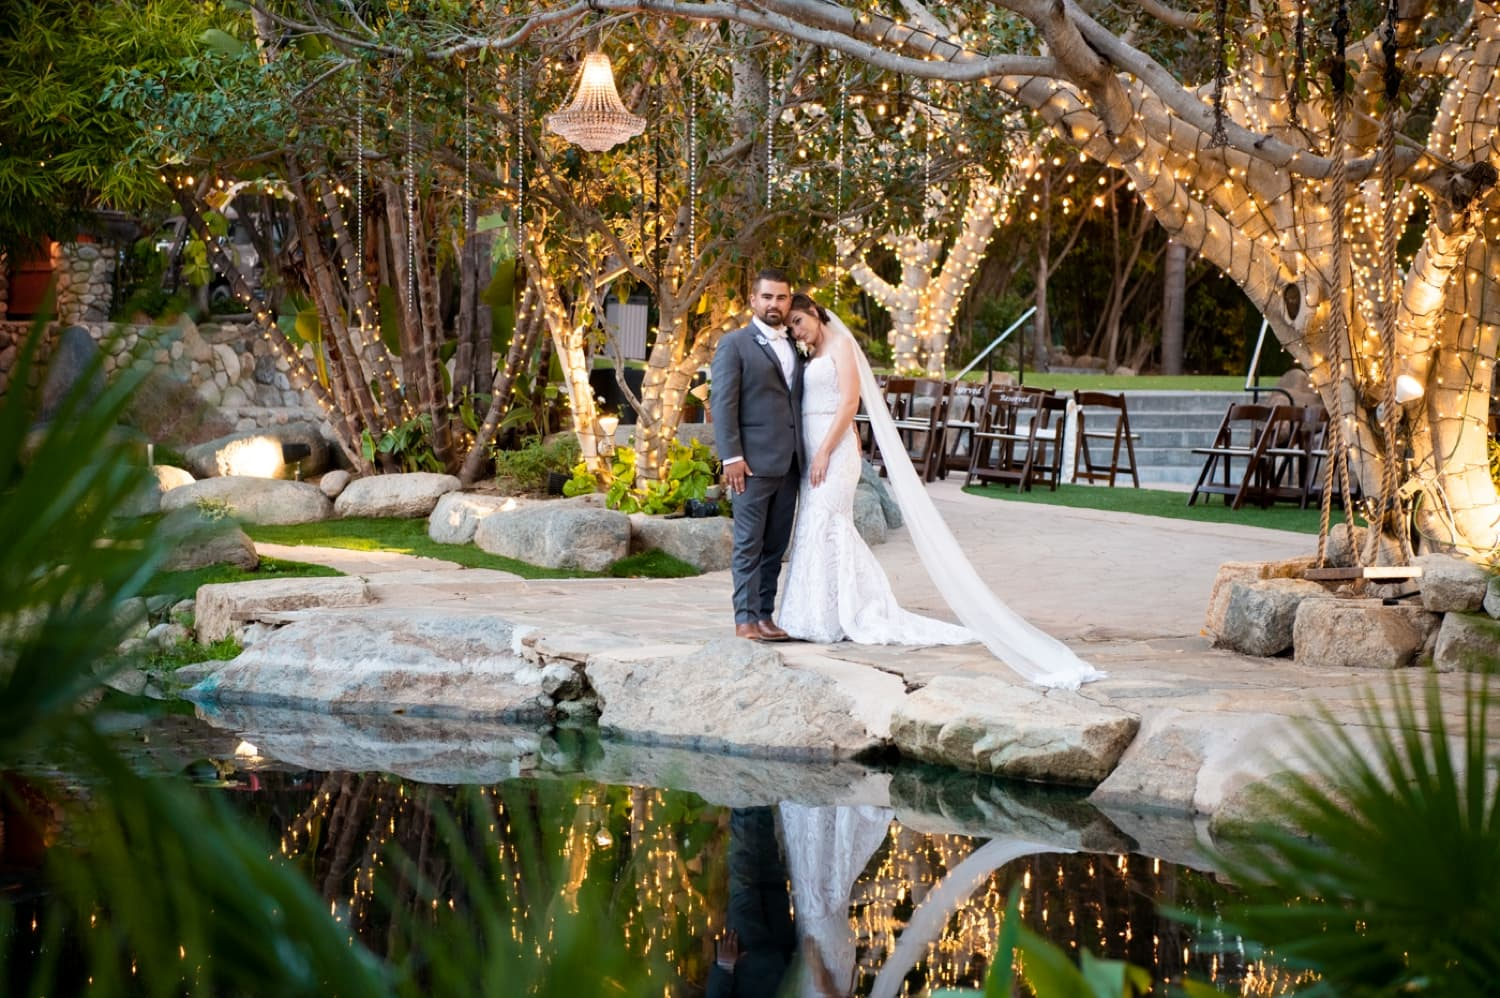 Bride and groom at the pond at Botanica.